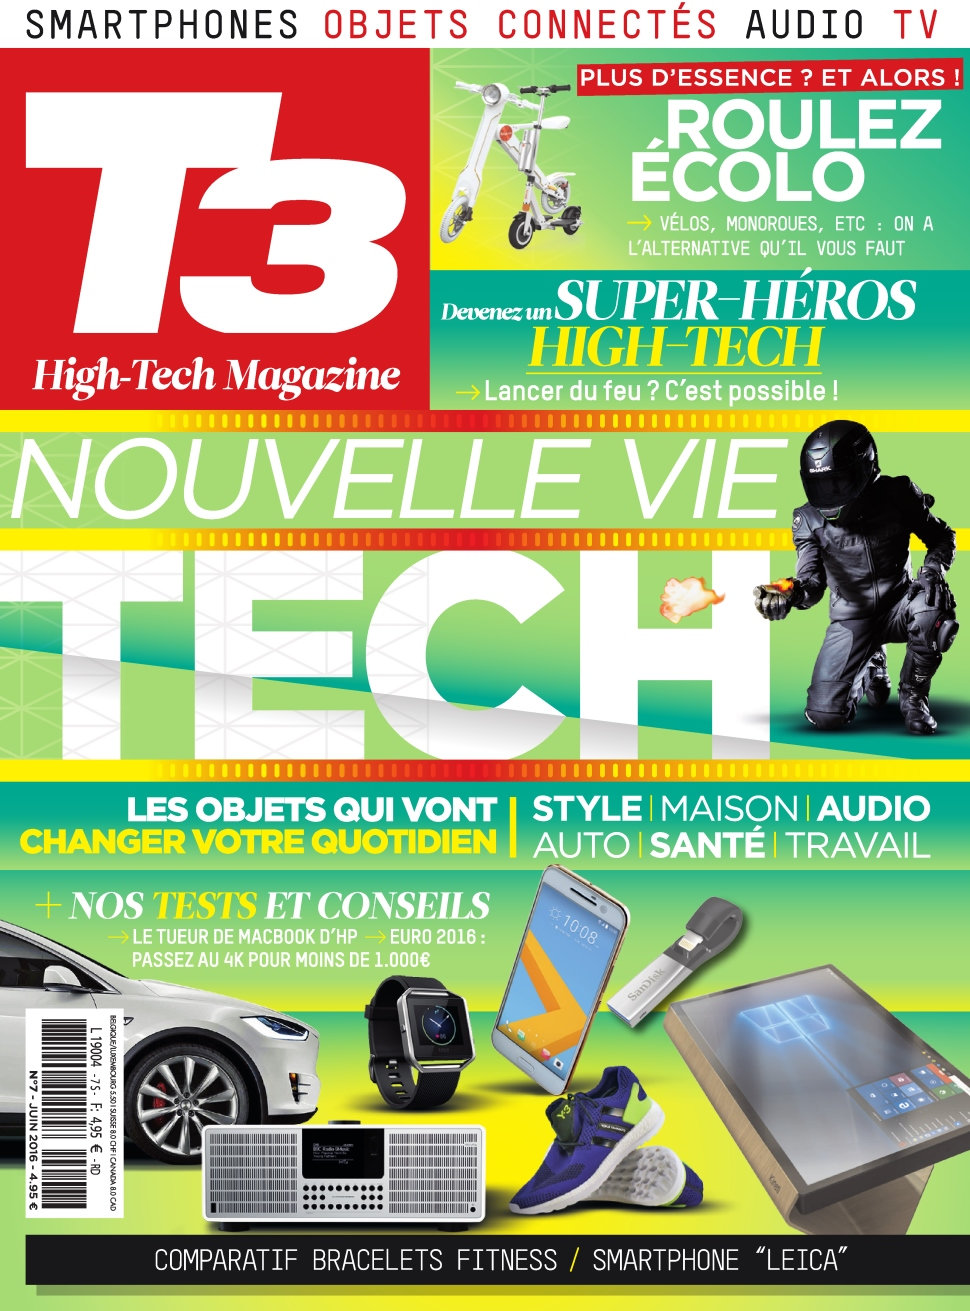 T3 HighTech Magazine N°7 - Juin 2016